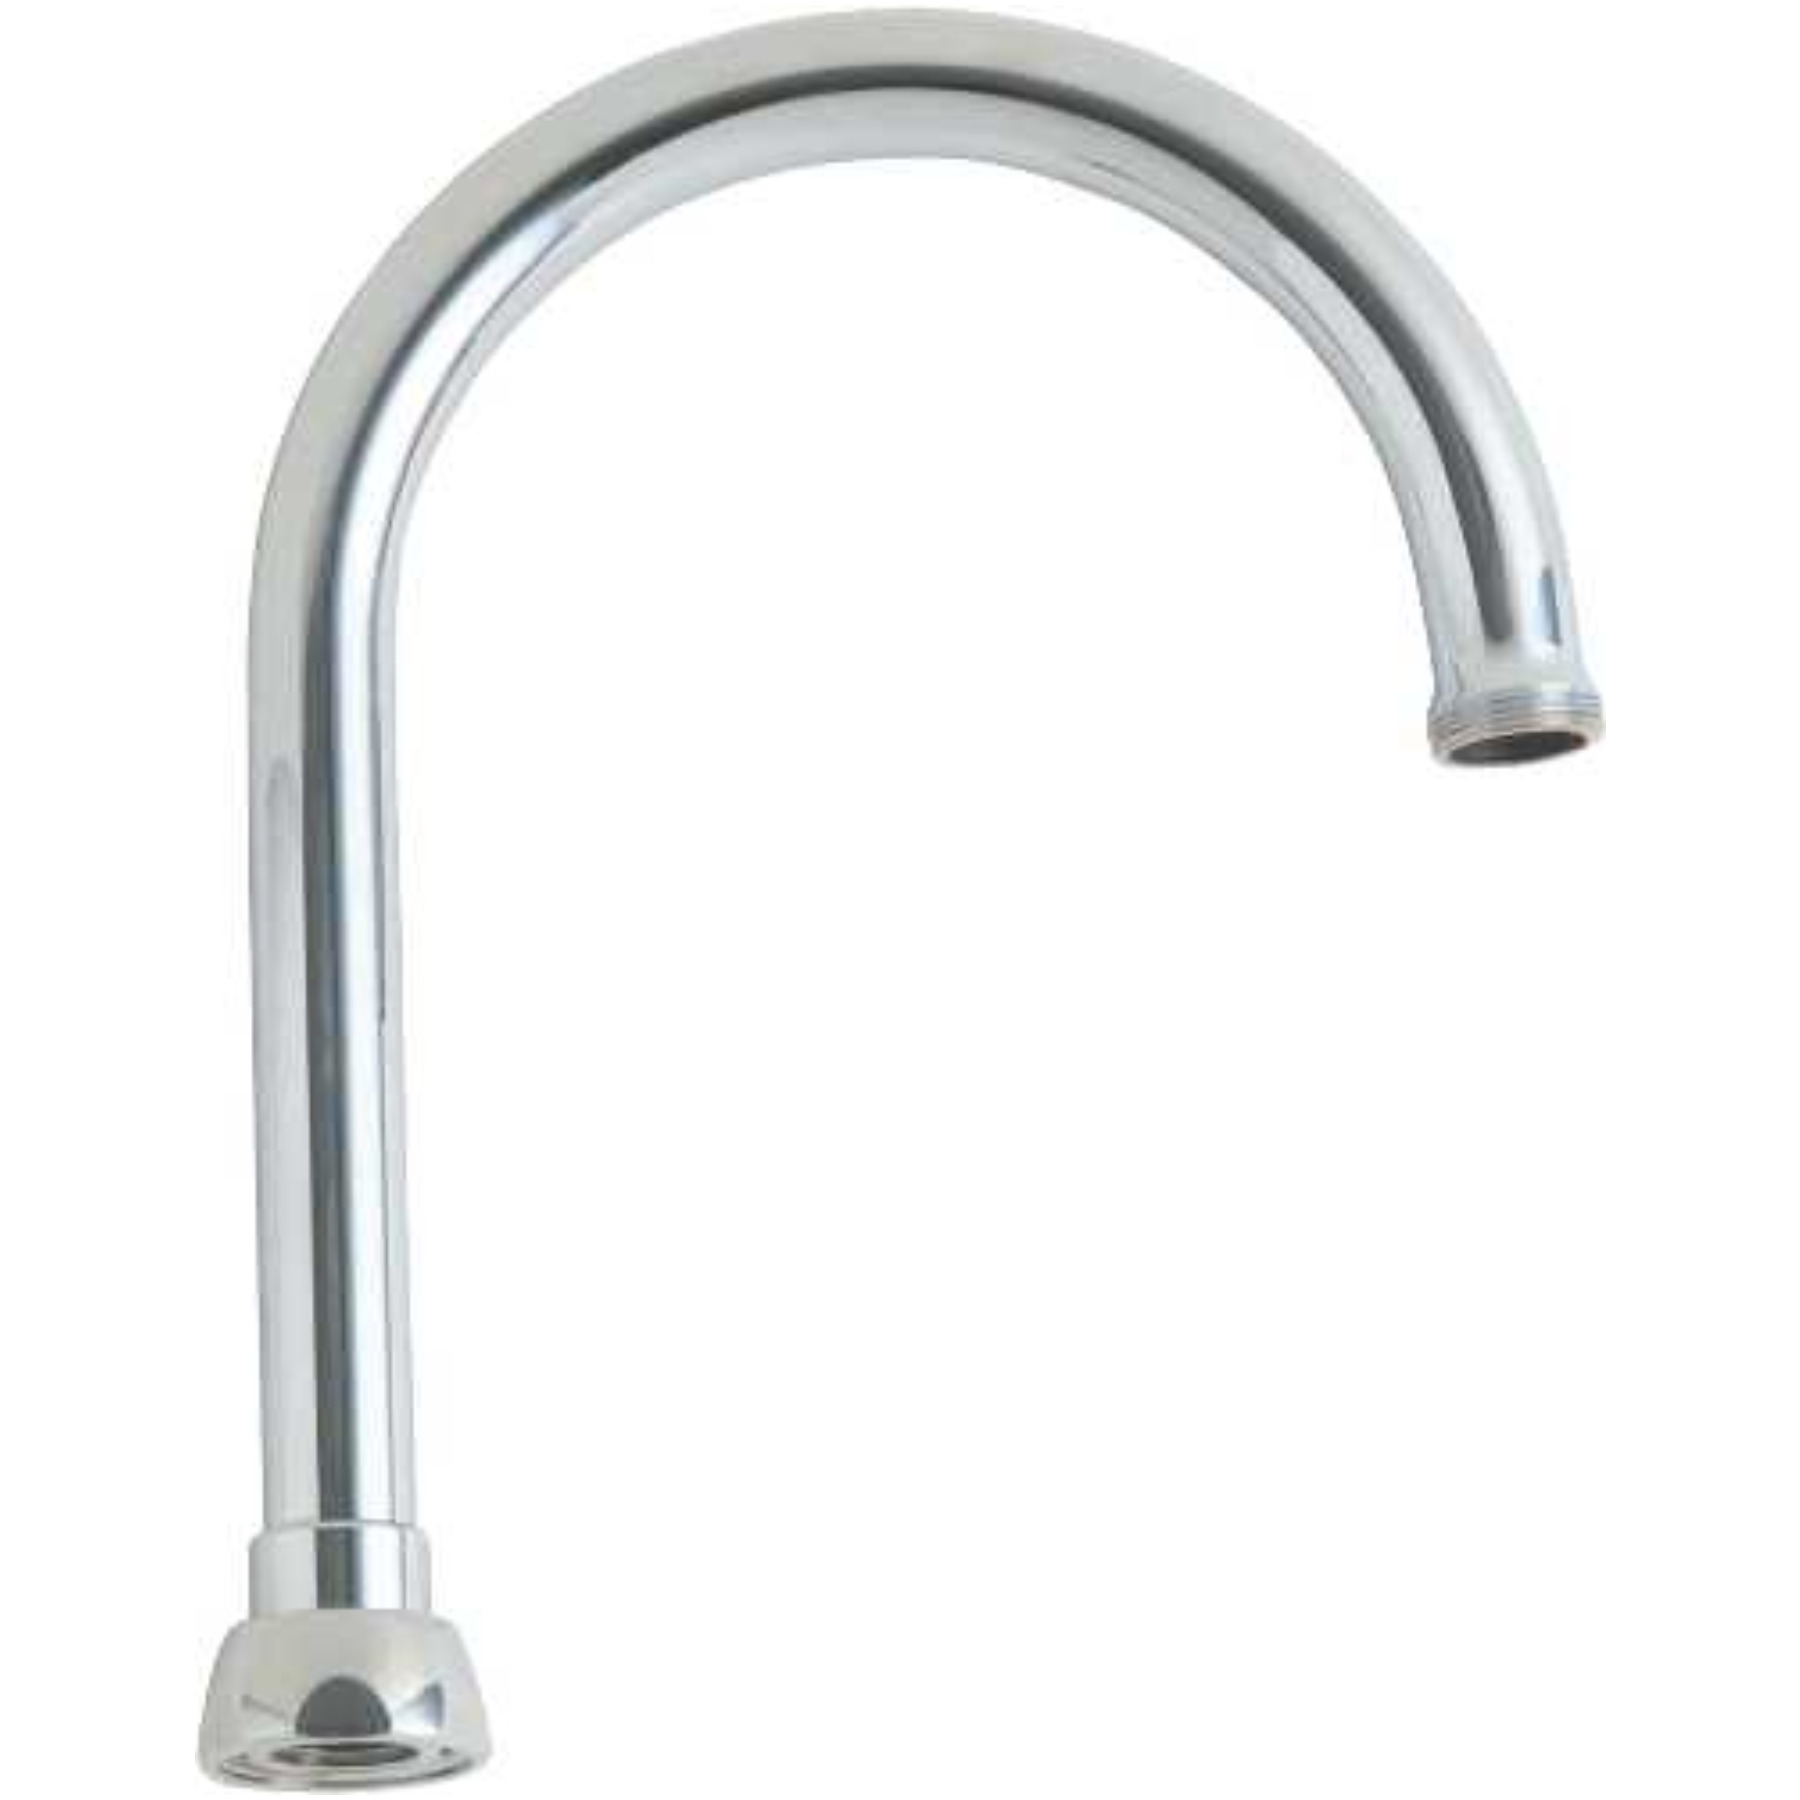 CHICAGO FAUCETS� ECAST� LEAD-FREE 5.25-INCH GOOSENECK SPOUT, 8 IN. TALL, 13/16 IN. - 24 MALE OUTLET THREAD, CHROME